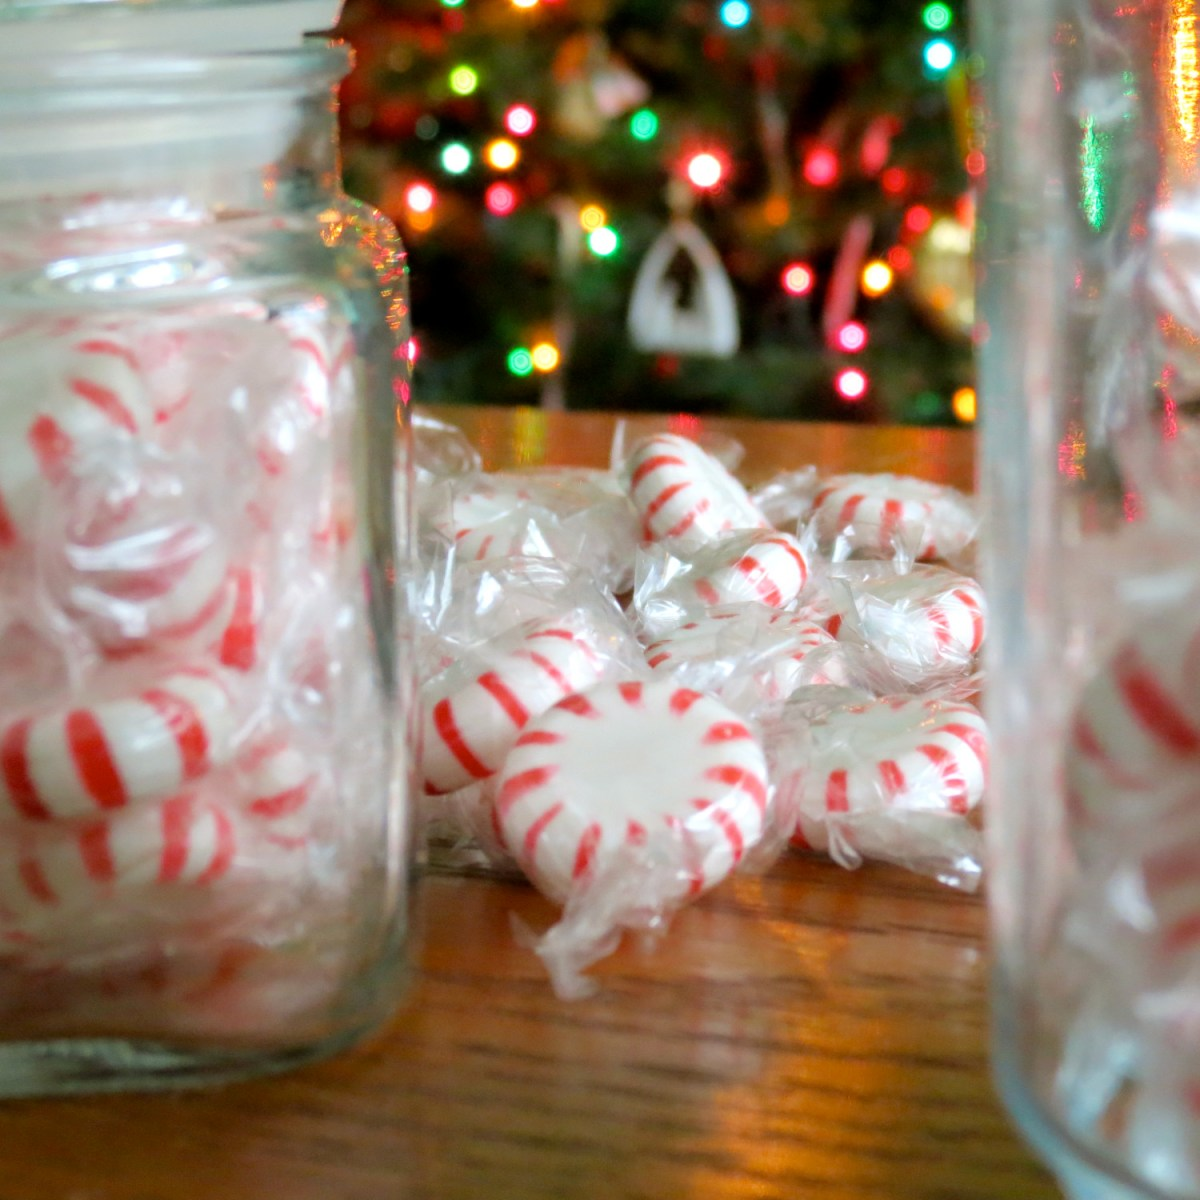 7 Simple Ways to Make Your Own Christmas Magic